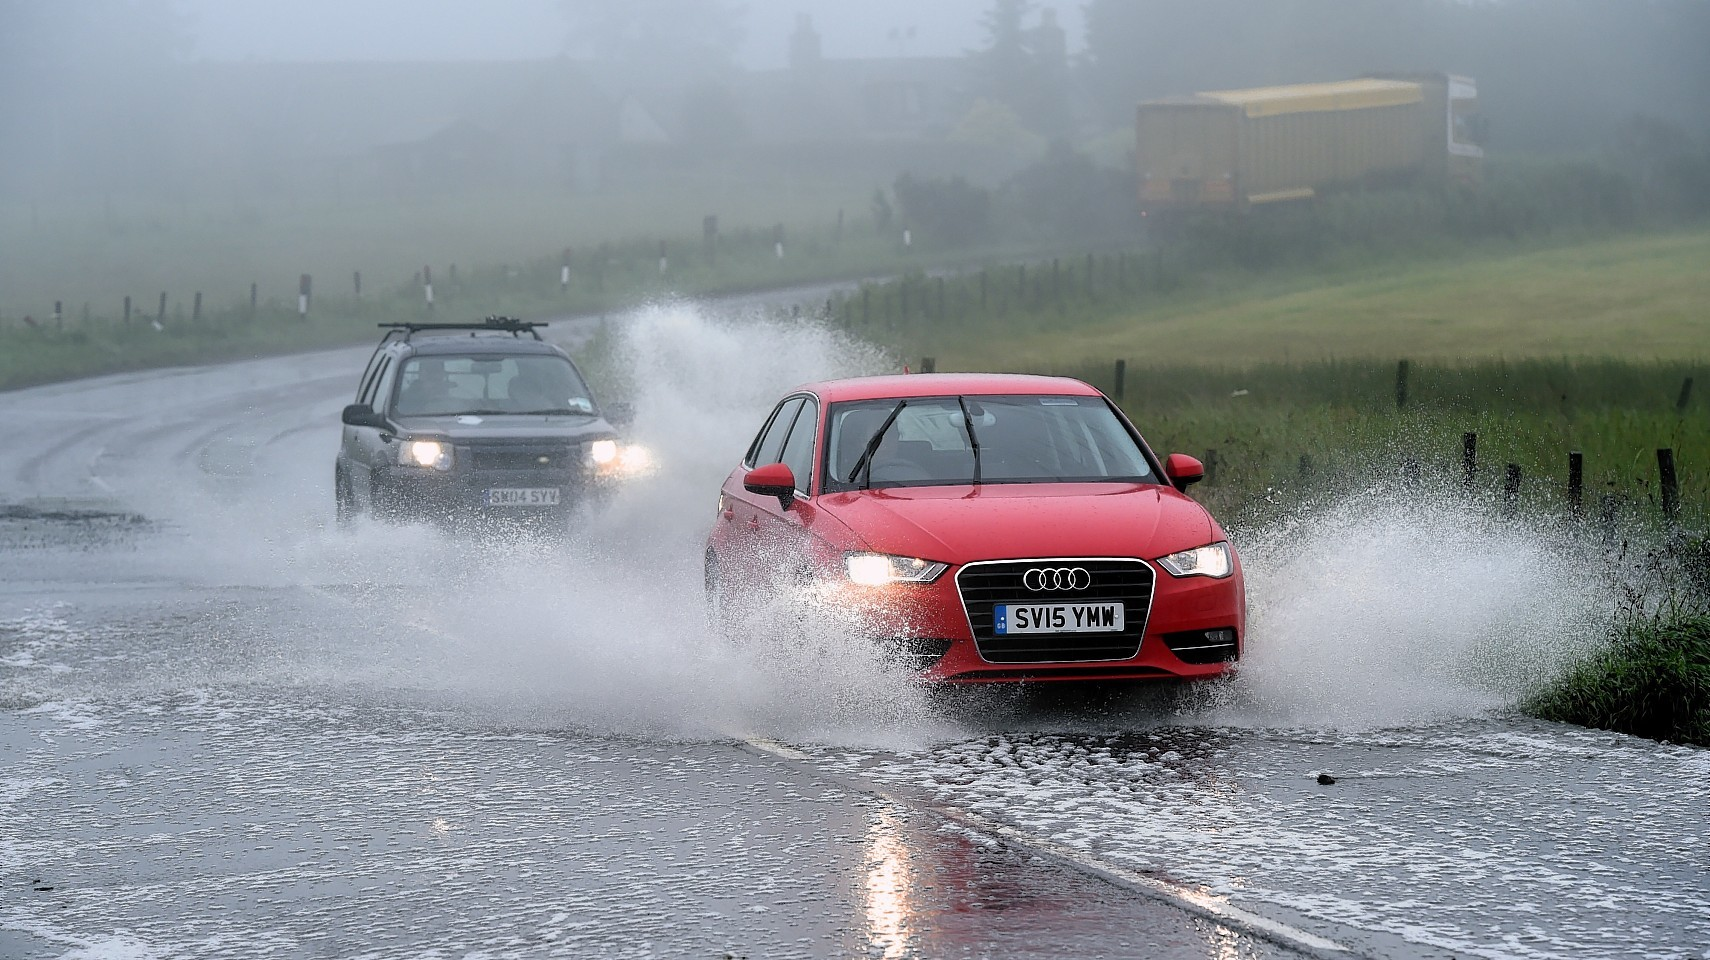 Flooding has been predicted by SEPA